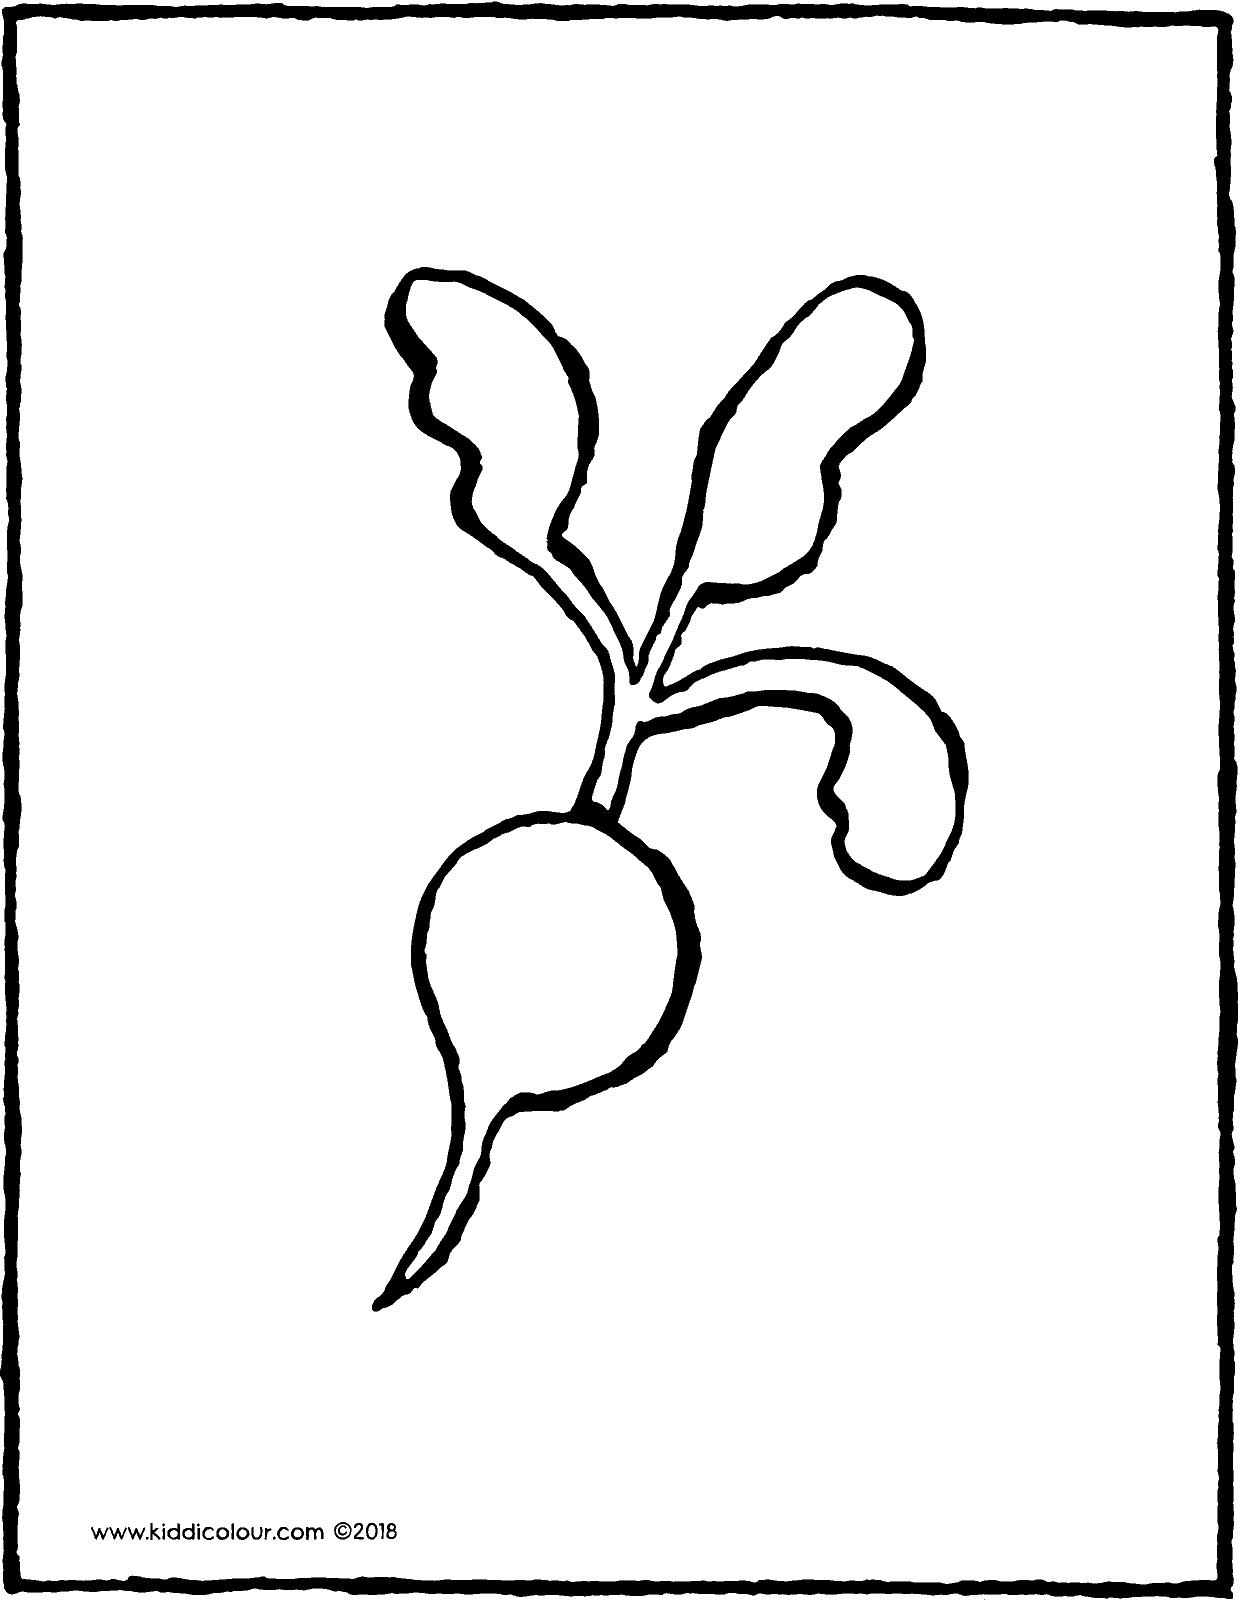 radish colouring page drawing picture 01V